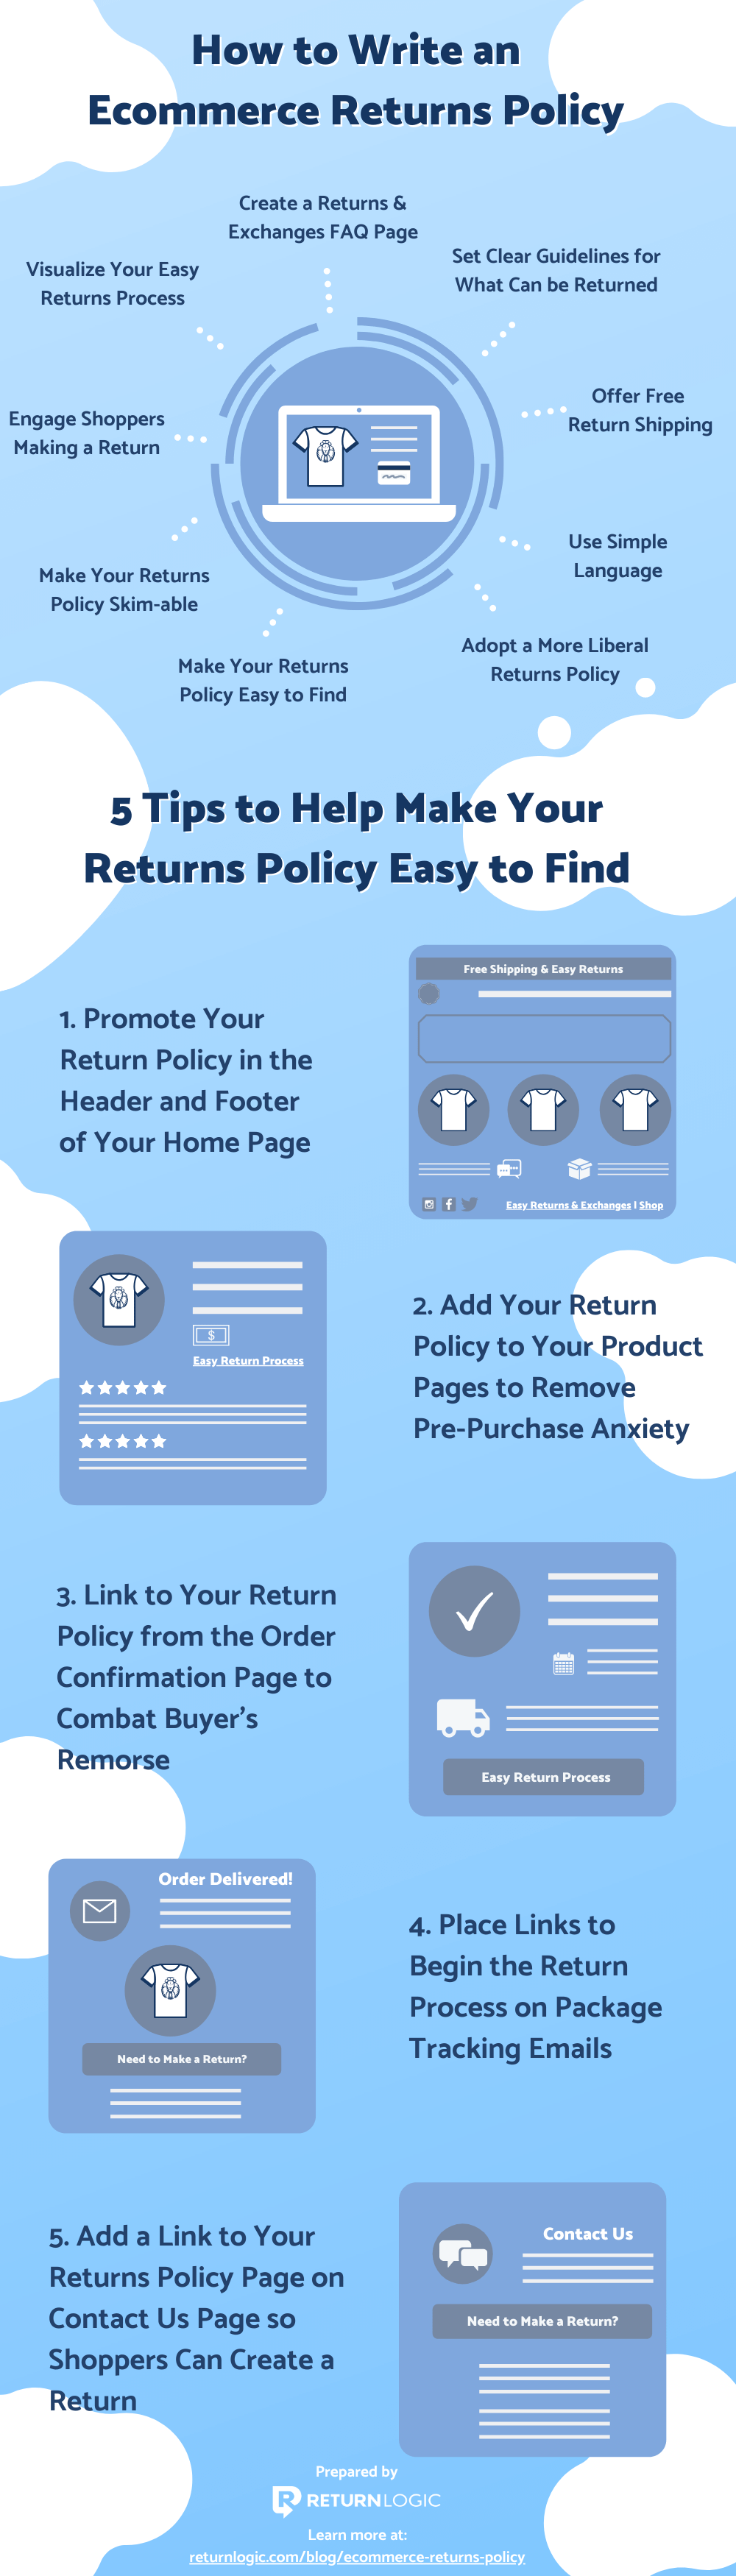 ecommerce-return-policy-infographic